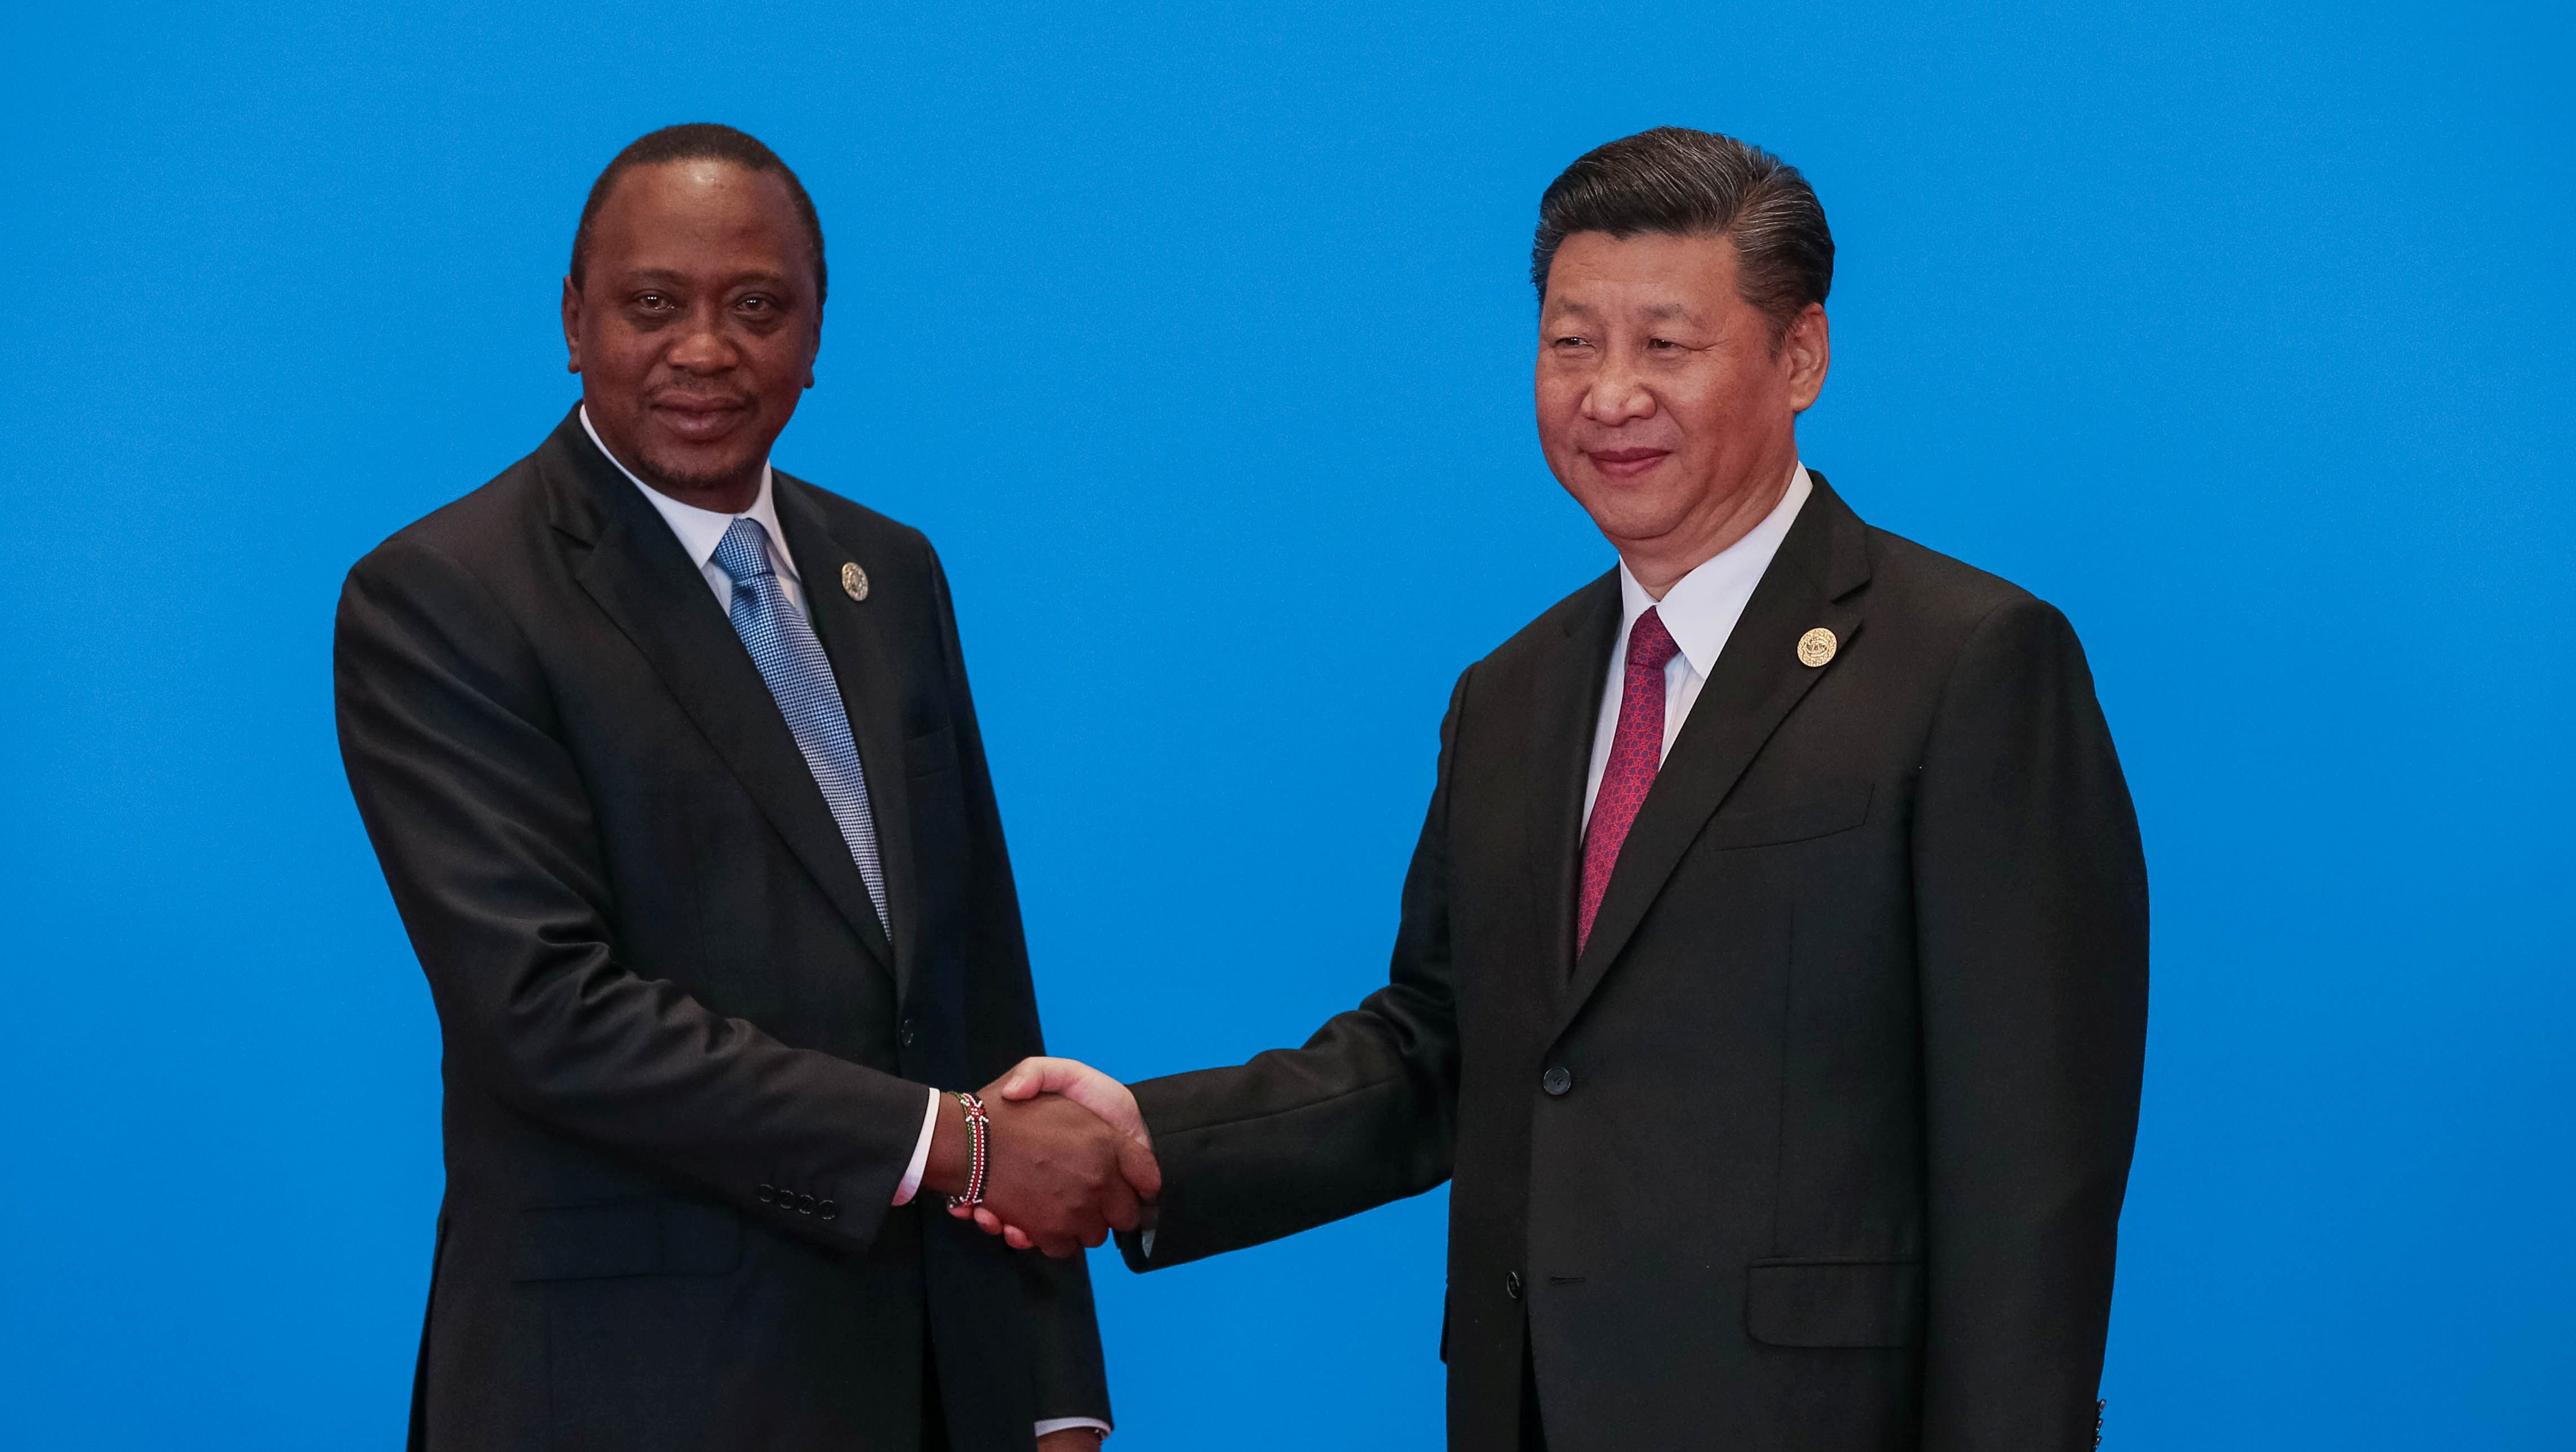 Chinese President Xi Jinping shakes hands with Kenya's President Uhuru Kenyatta during the welcome ceremony for the Belt and Road Forum, at the International Conference Center in Yanqi Lake, north of Beijing, China, May 15, 2017.